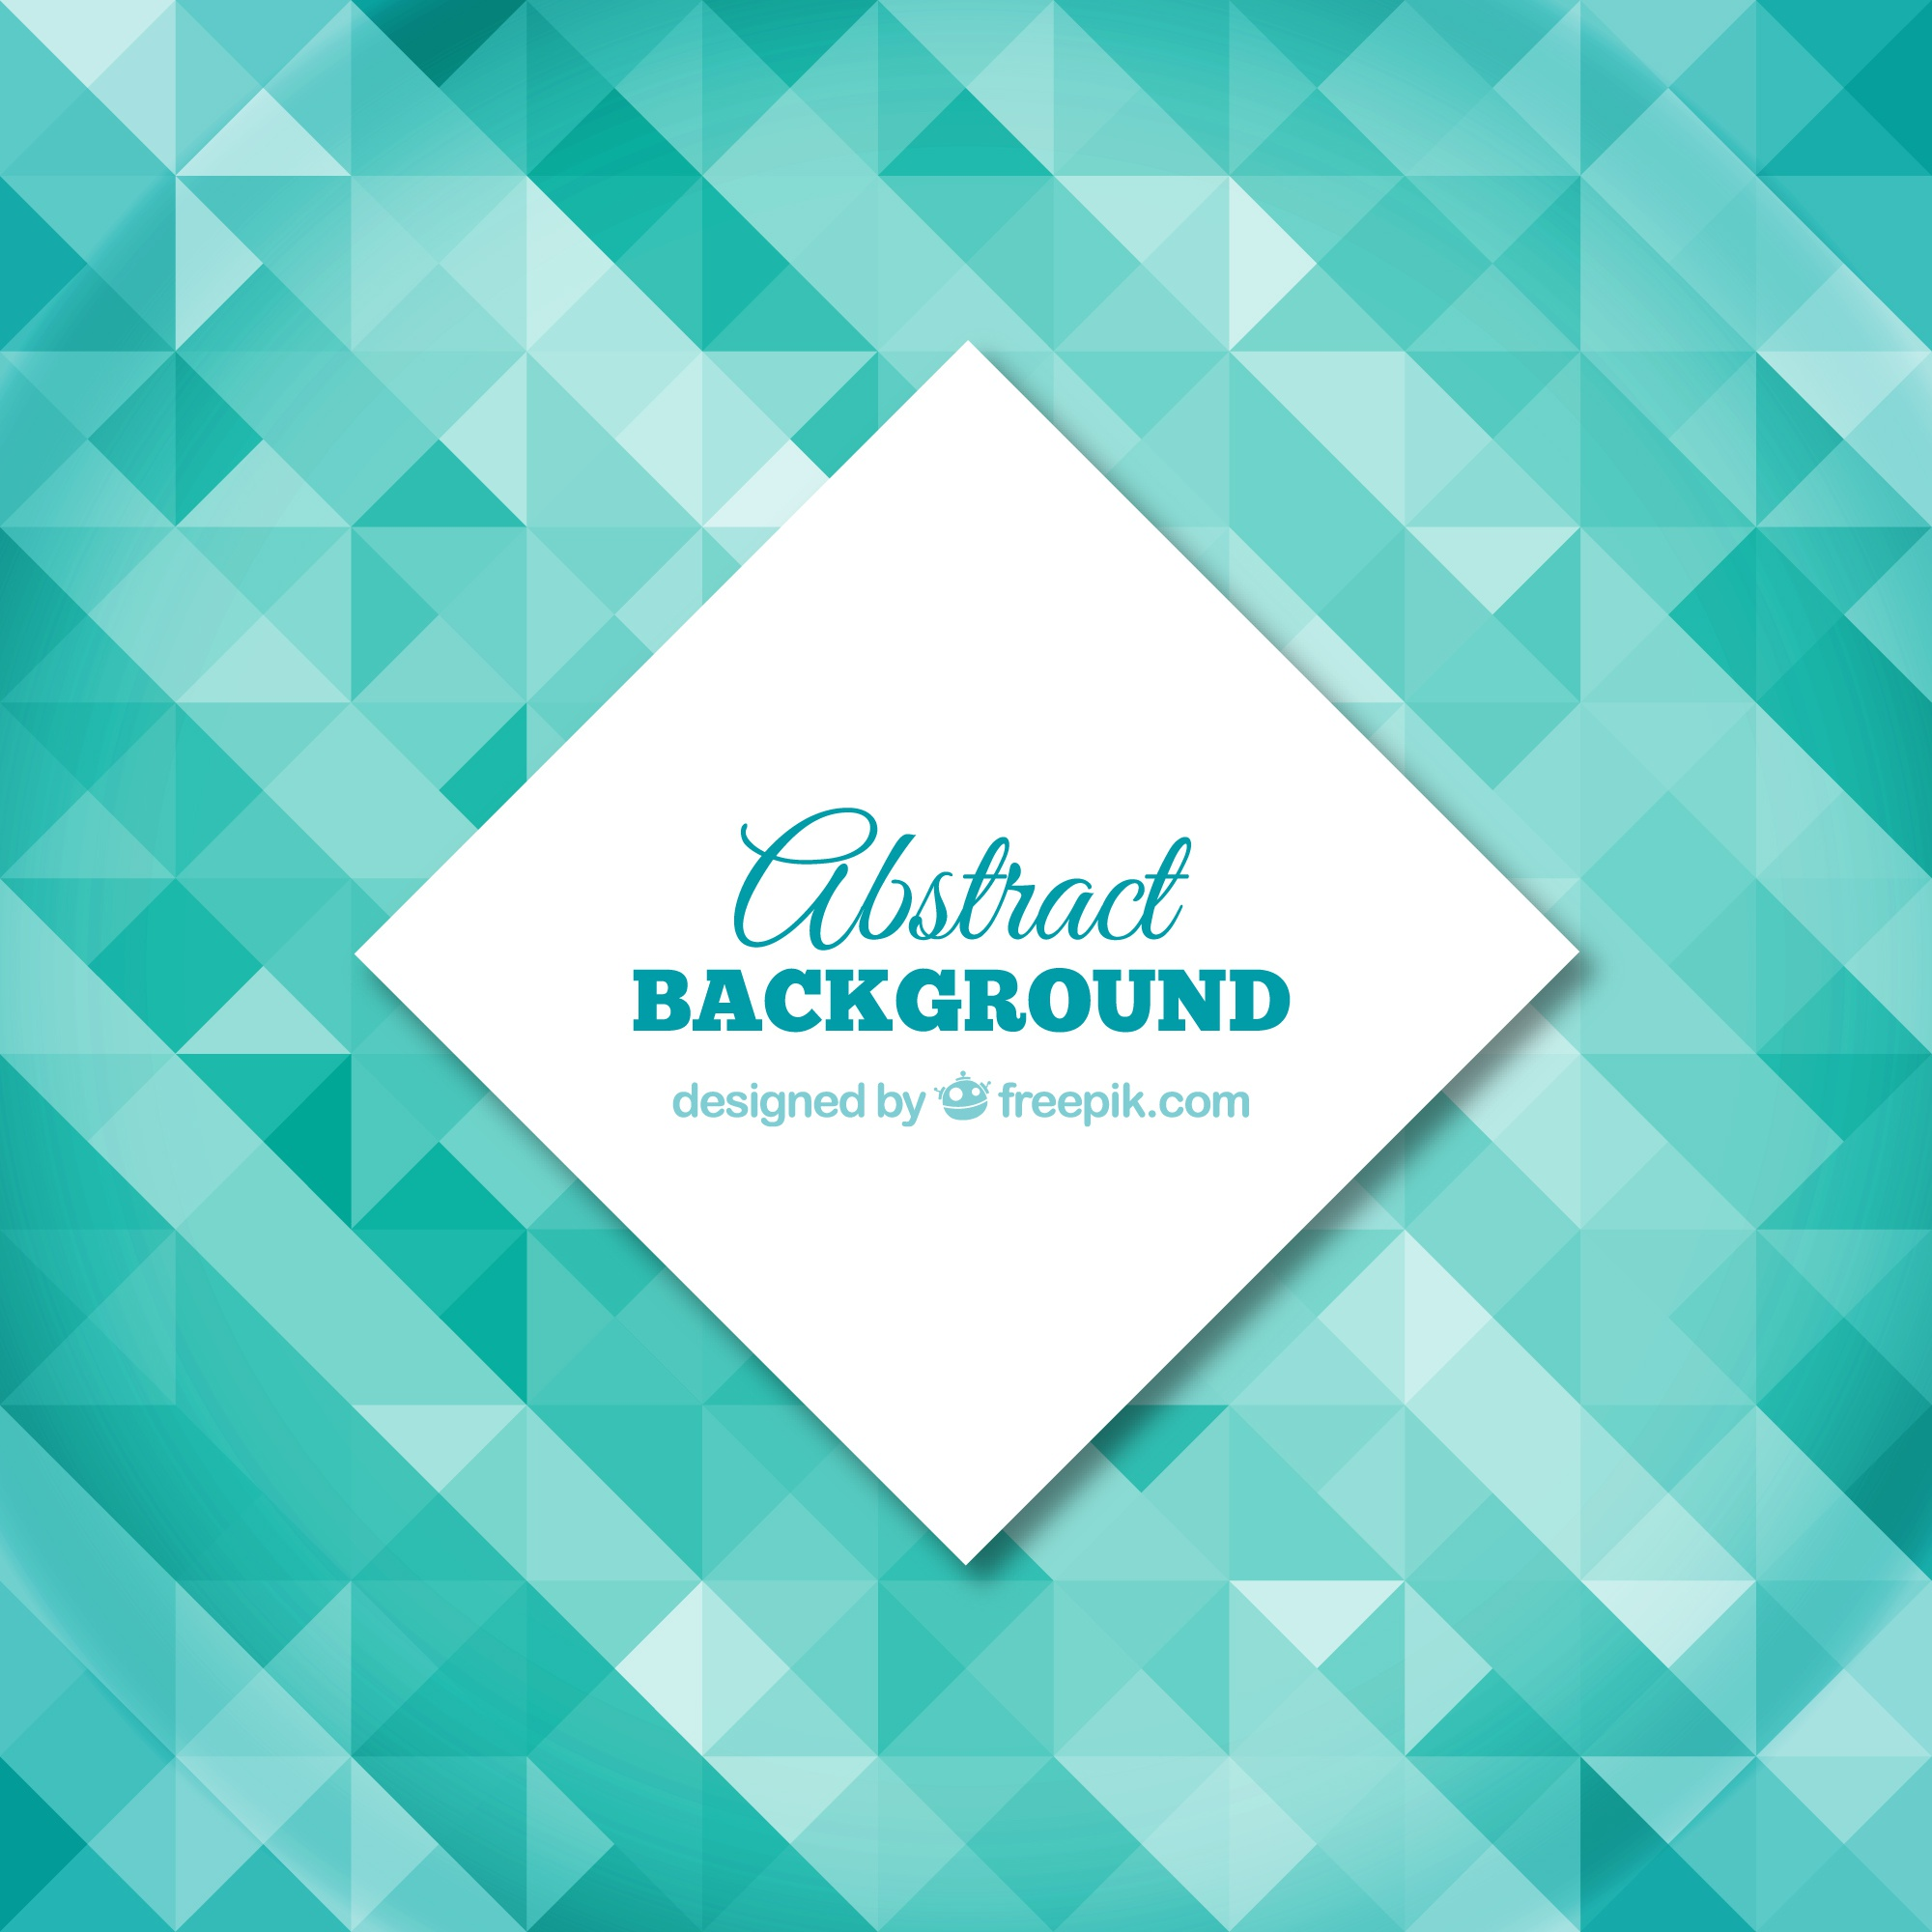 Polygonal background in turquoise tones